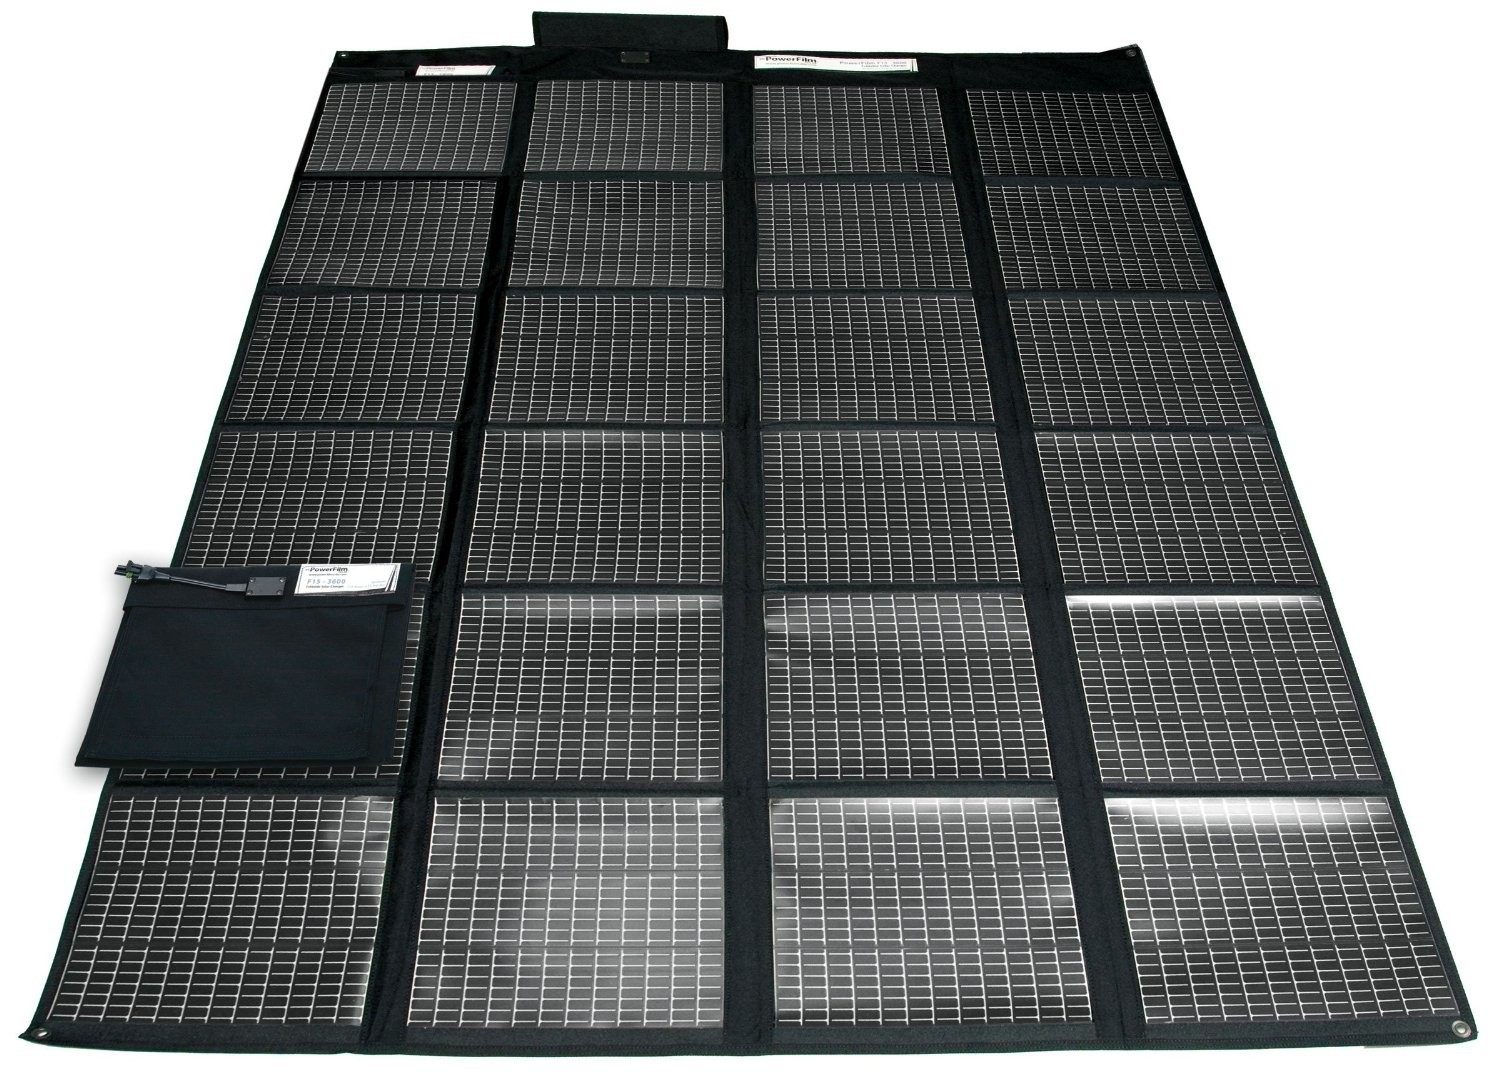 CHSO9R60 60 Watt Foldable Solar Panel with Female Cigarette Lighter Plug for RDPR EBS Battery Solar Charging